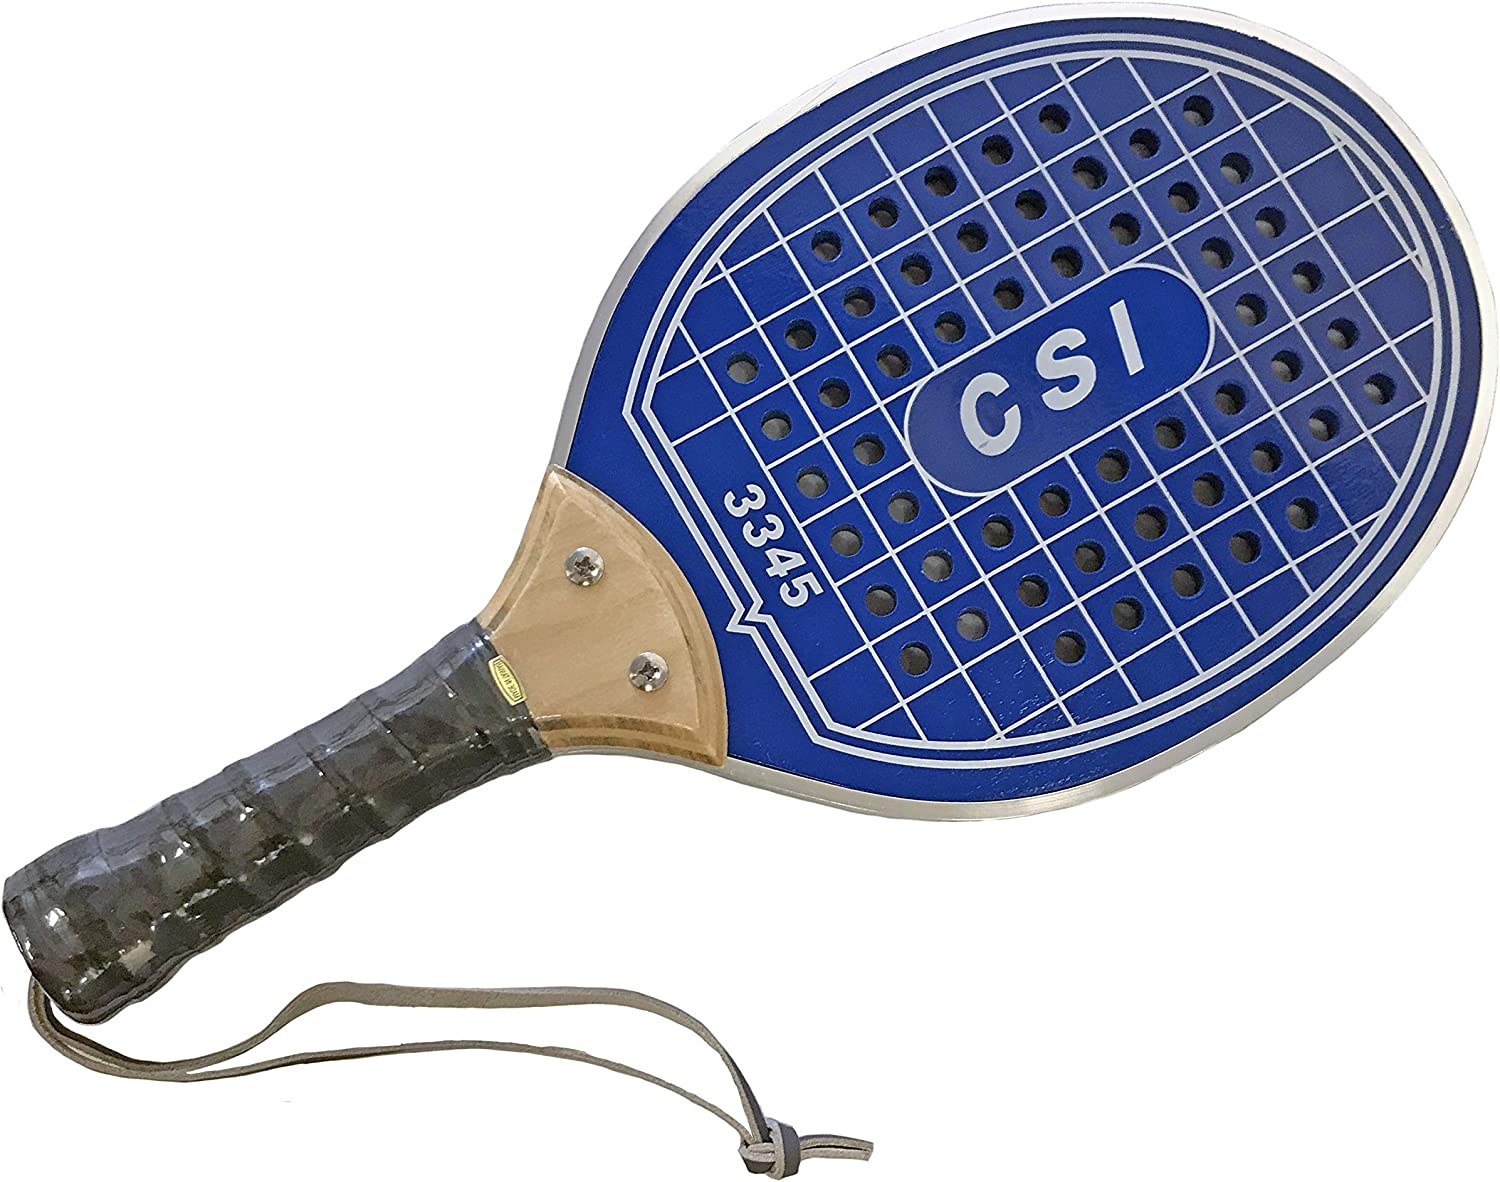 Amazon.com: CSI Cannon Deportes Pro Paddle Ball: Sports ...